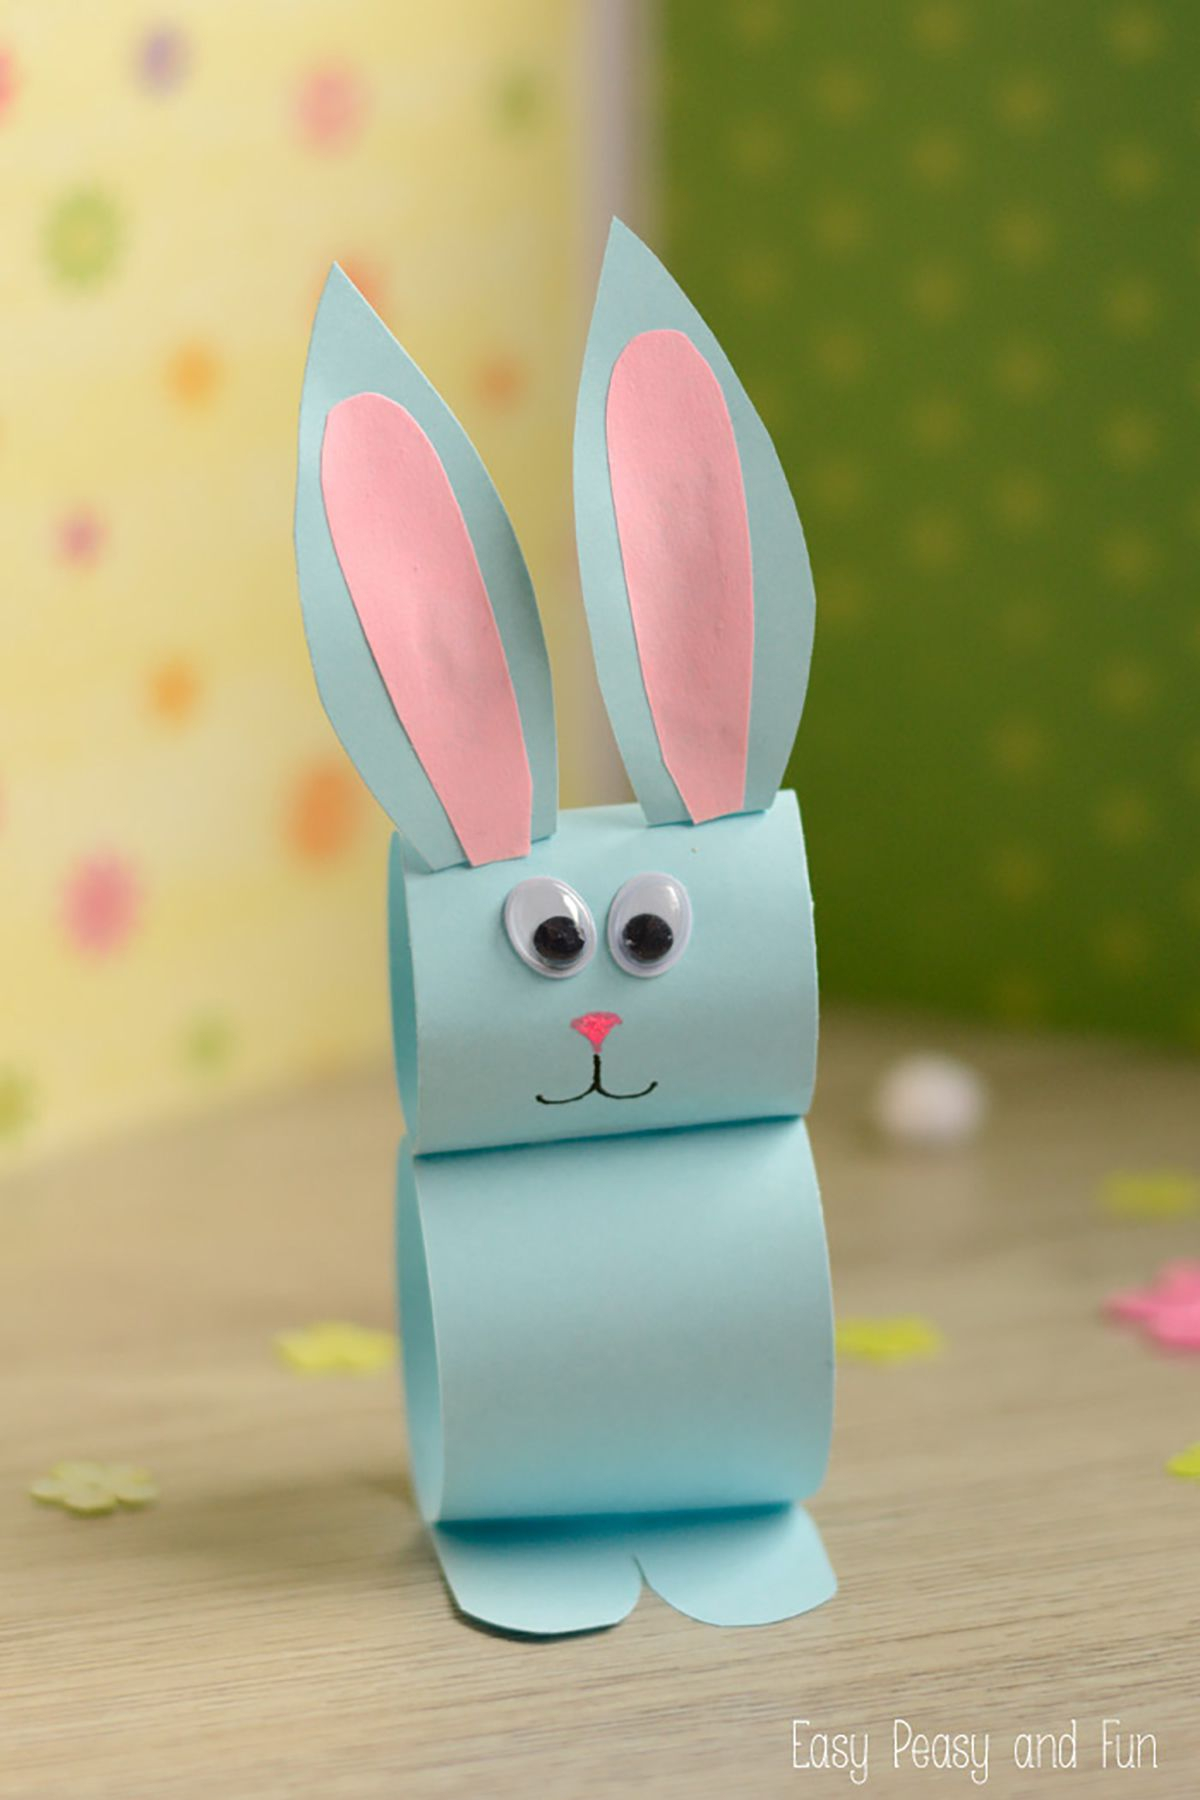 Easy Paper Craft Ideas For Kids 48 Easter Crafts For Kids Fun Diy Ideas For Kid Friendly Easter